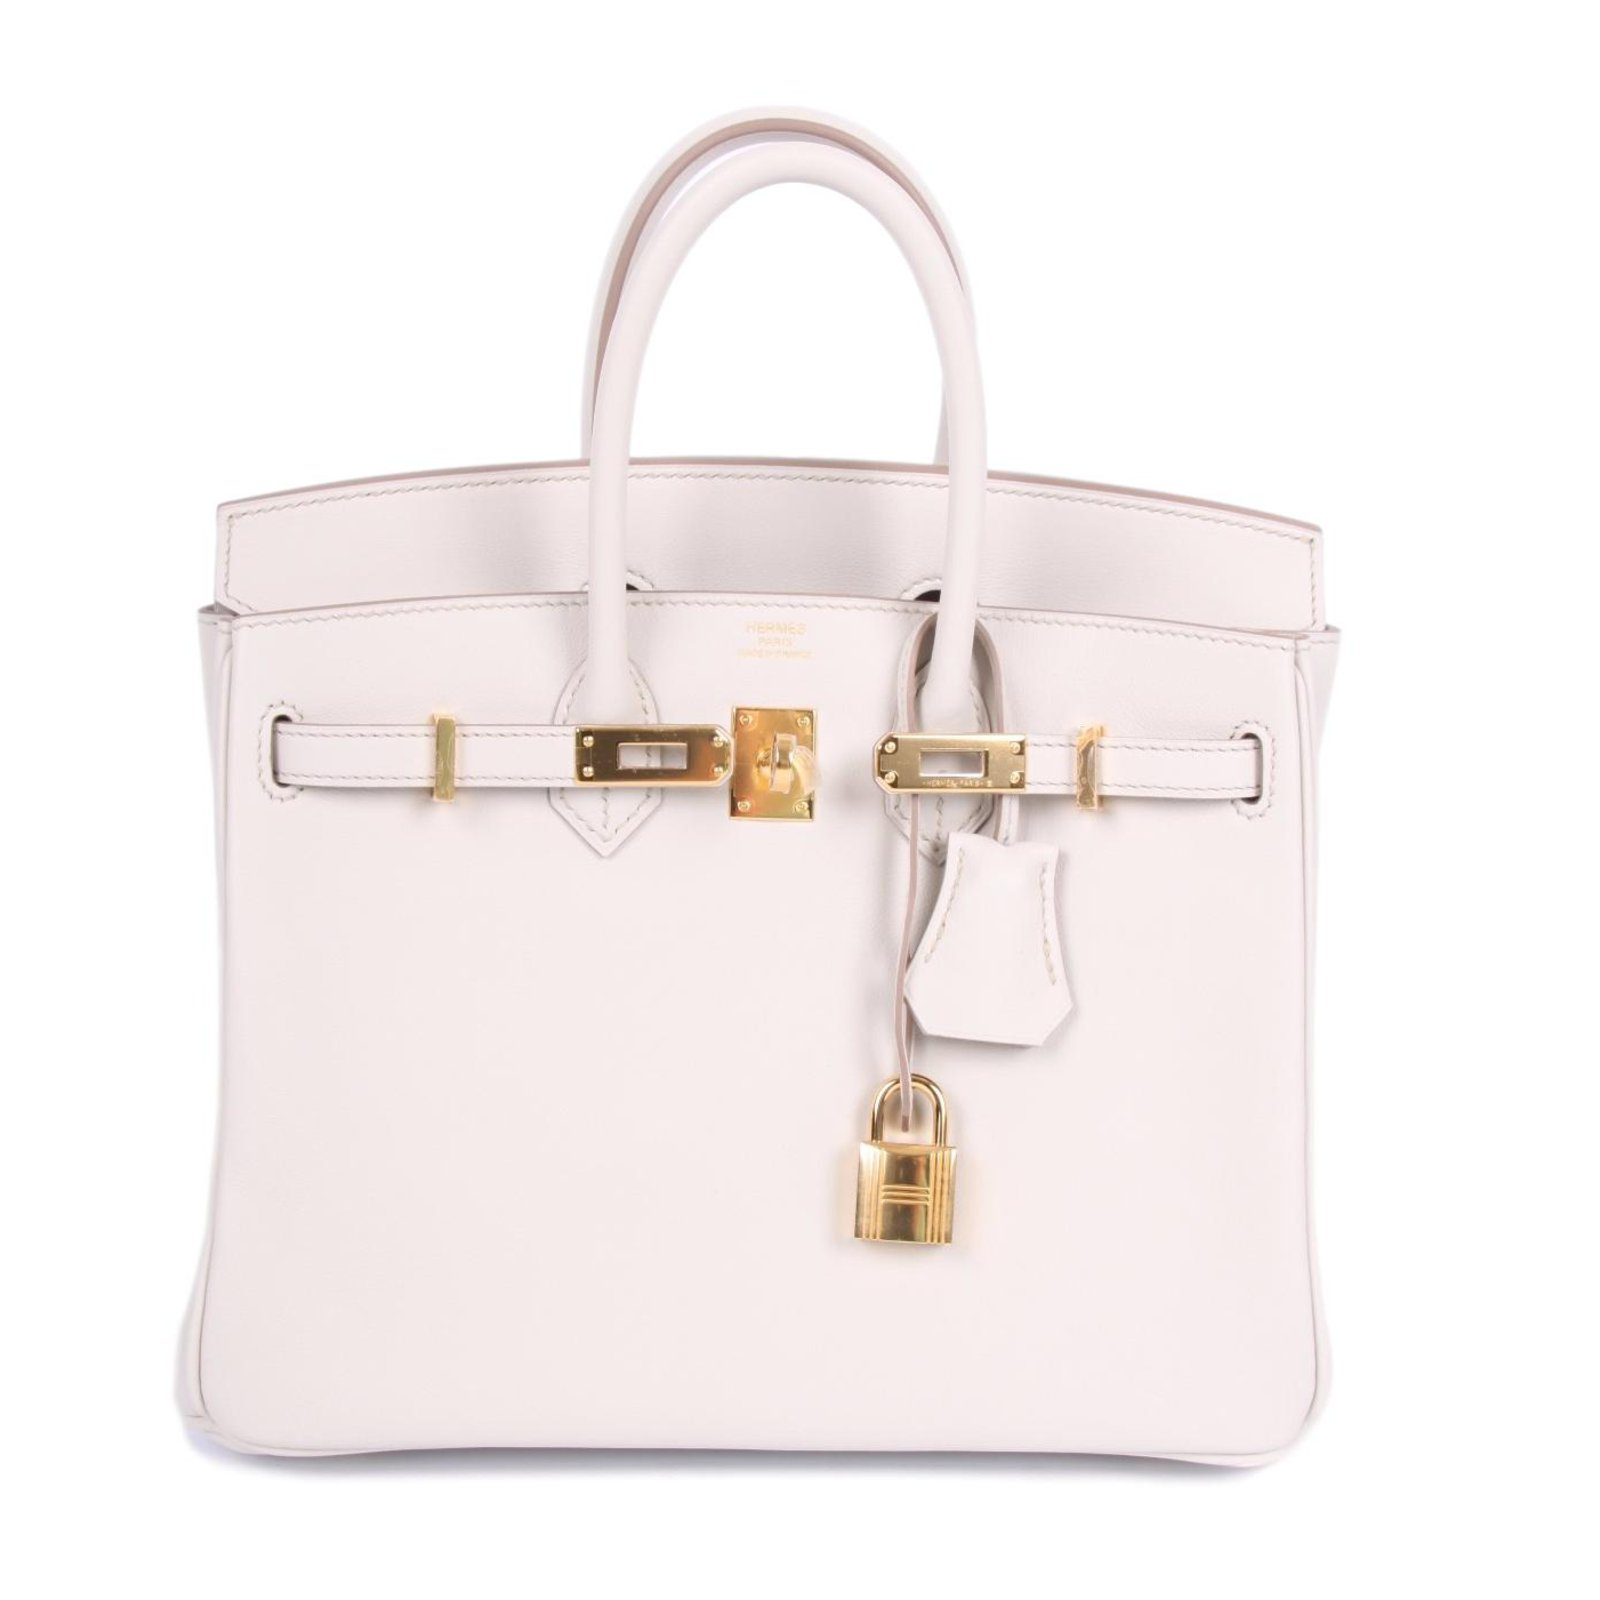 ... where can i buy hermès new hermes birkin 25 calfskin leather beton  handbags leather other ref f74ab0dd12f70